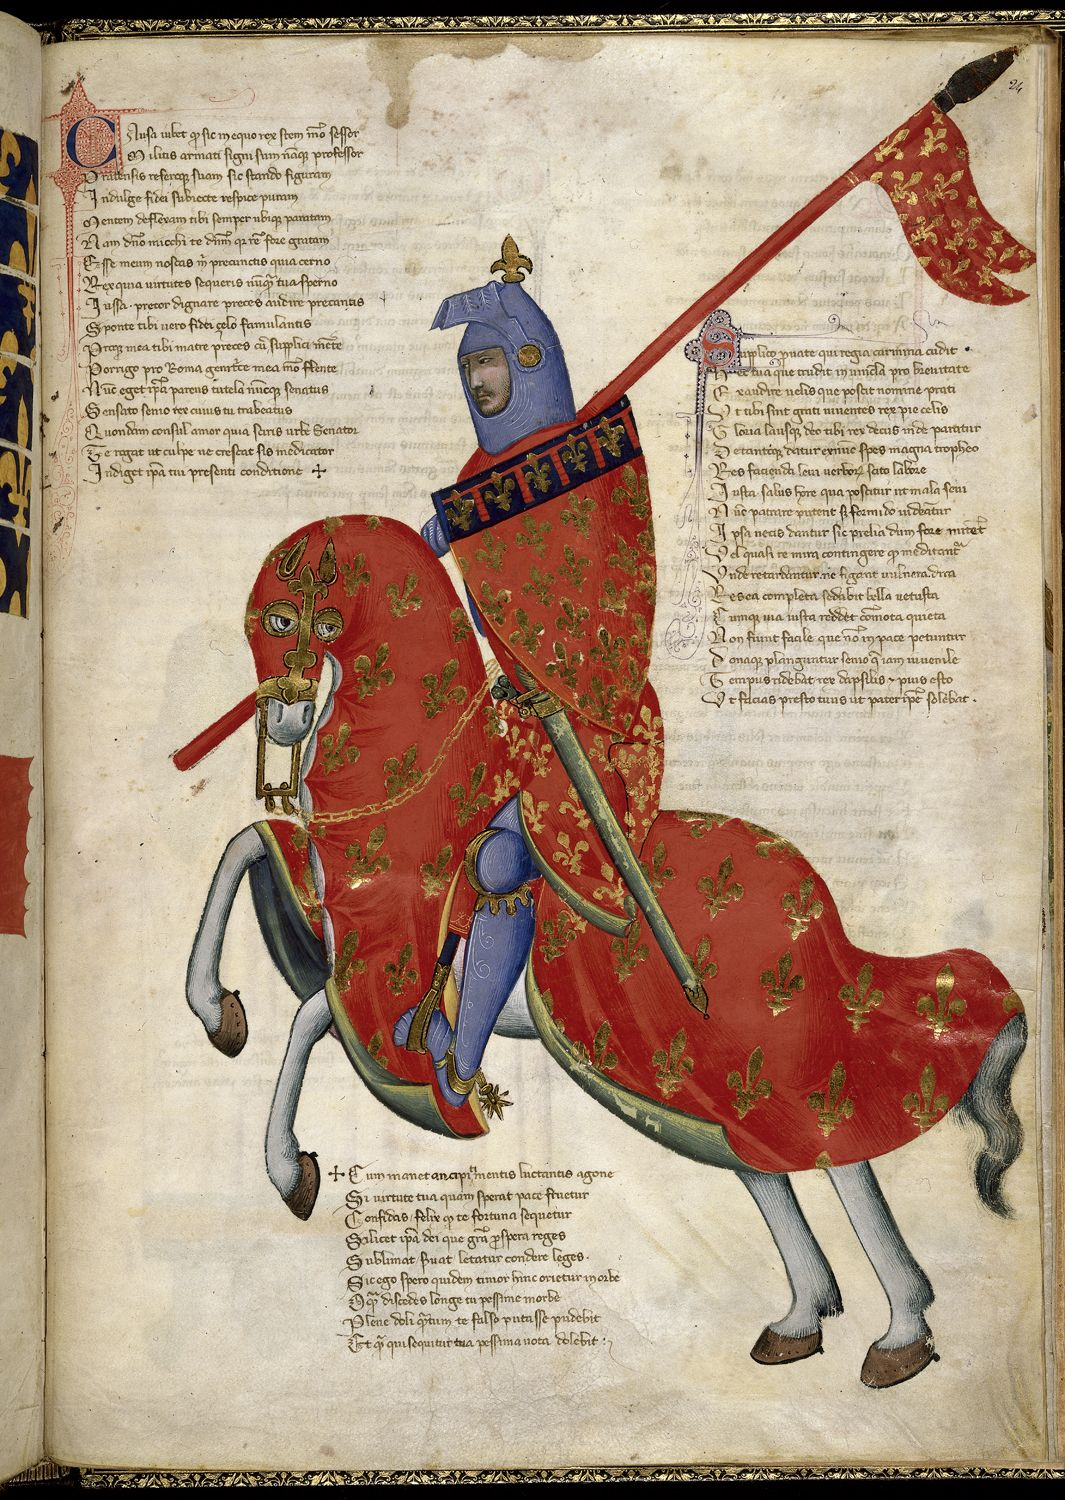 Miniature of an armed knight of Prato on horseback (a manuscript illustration), c. 1335-40, Pacino di Buonaguida (attribution), Italy